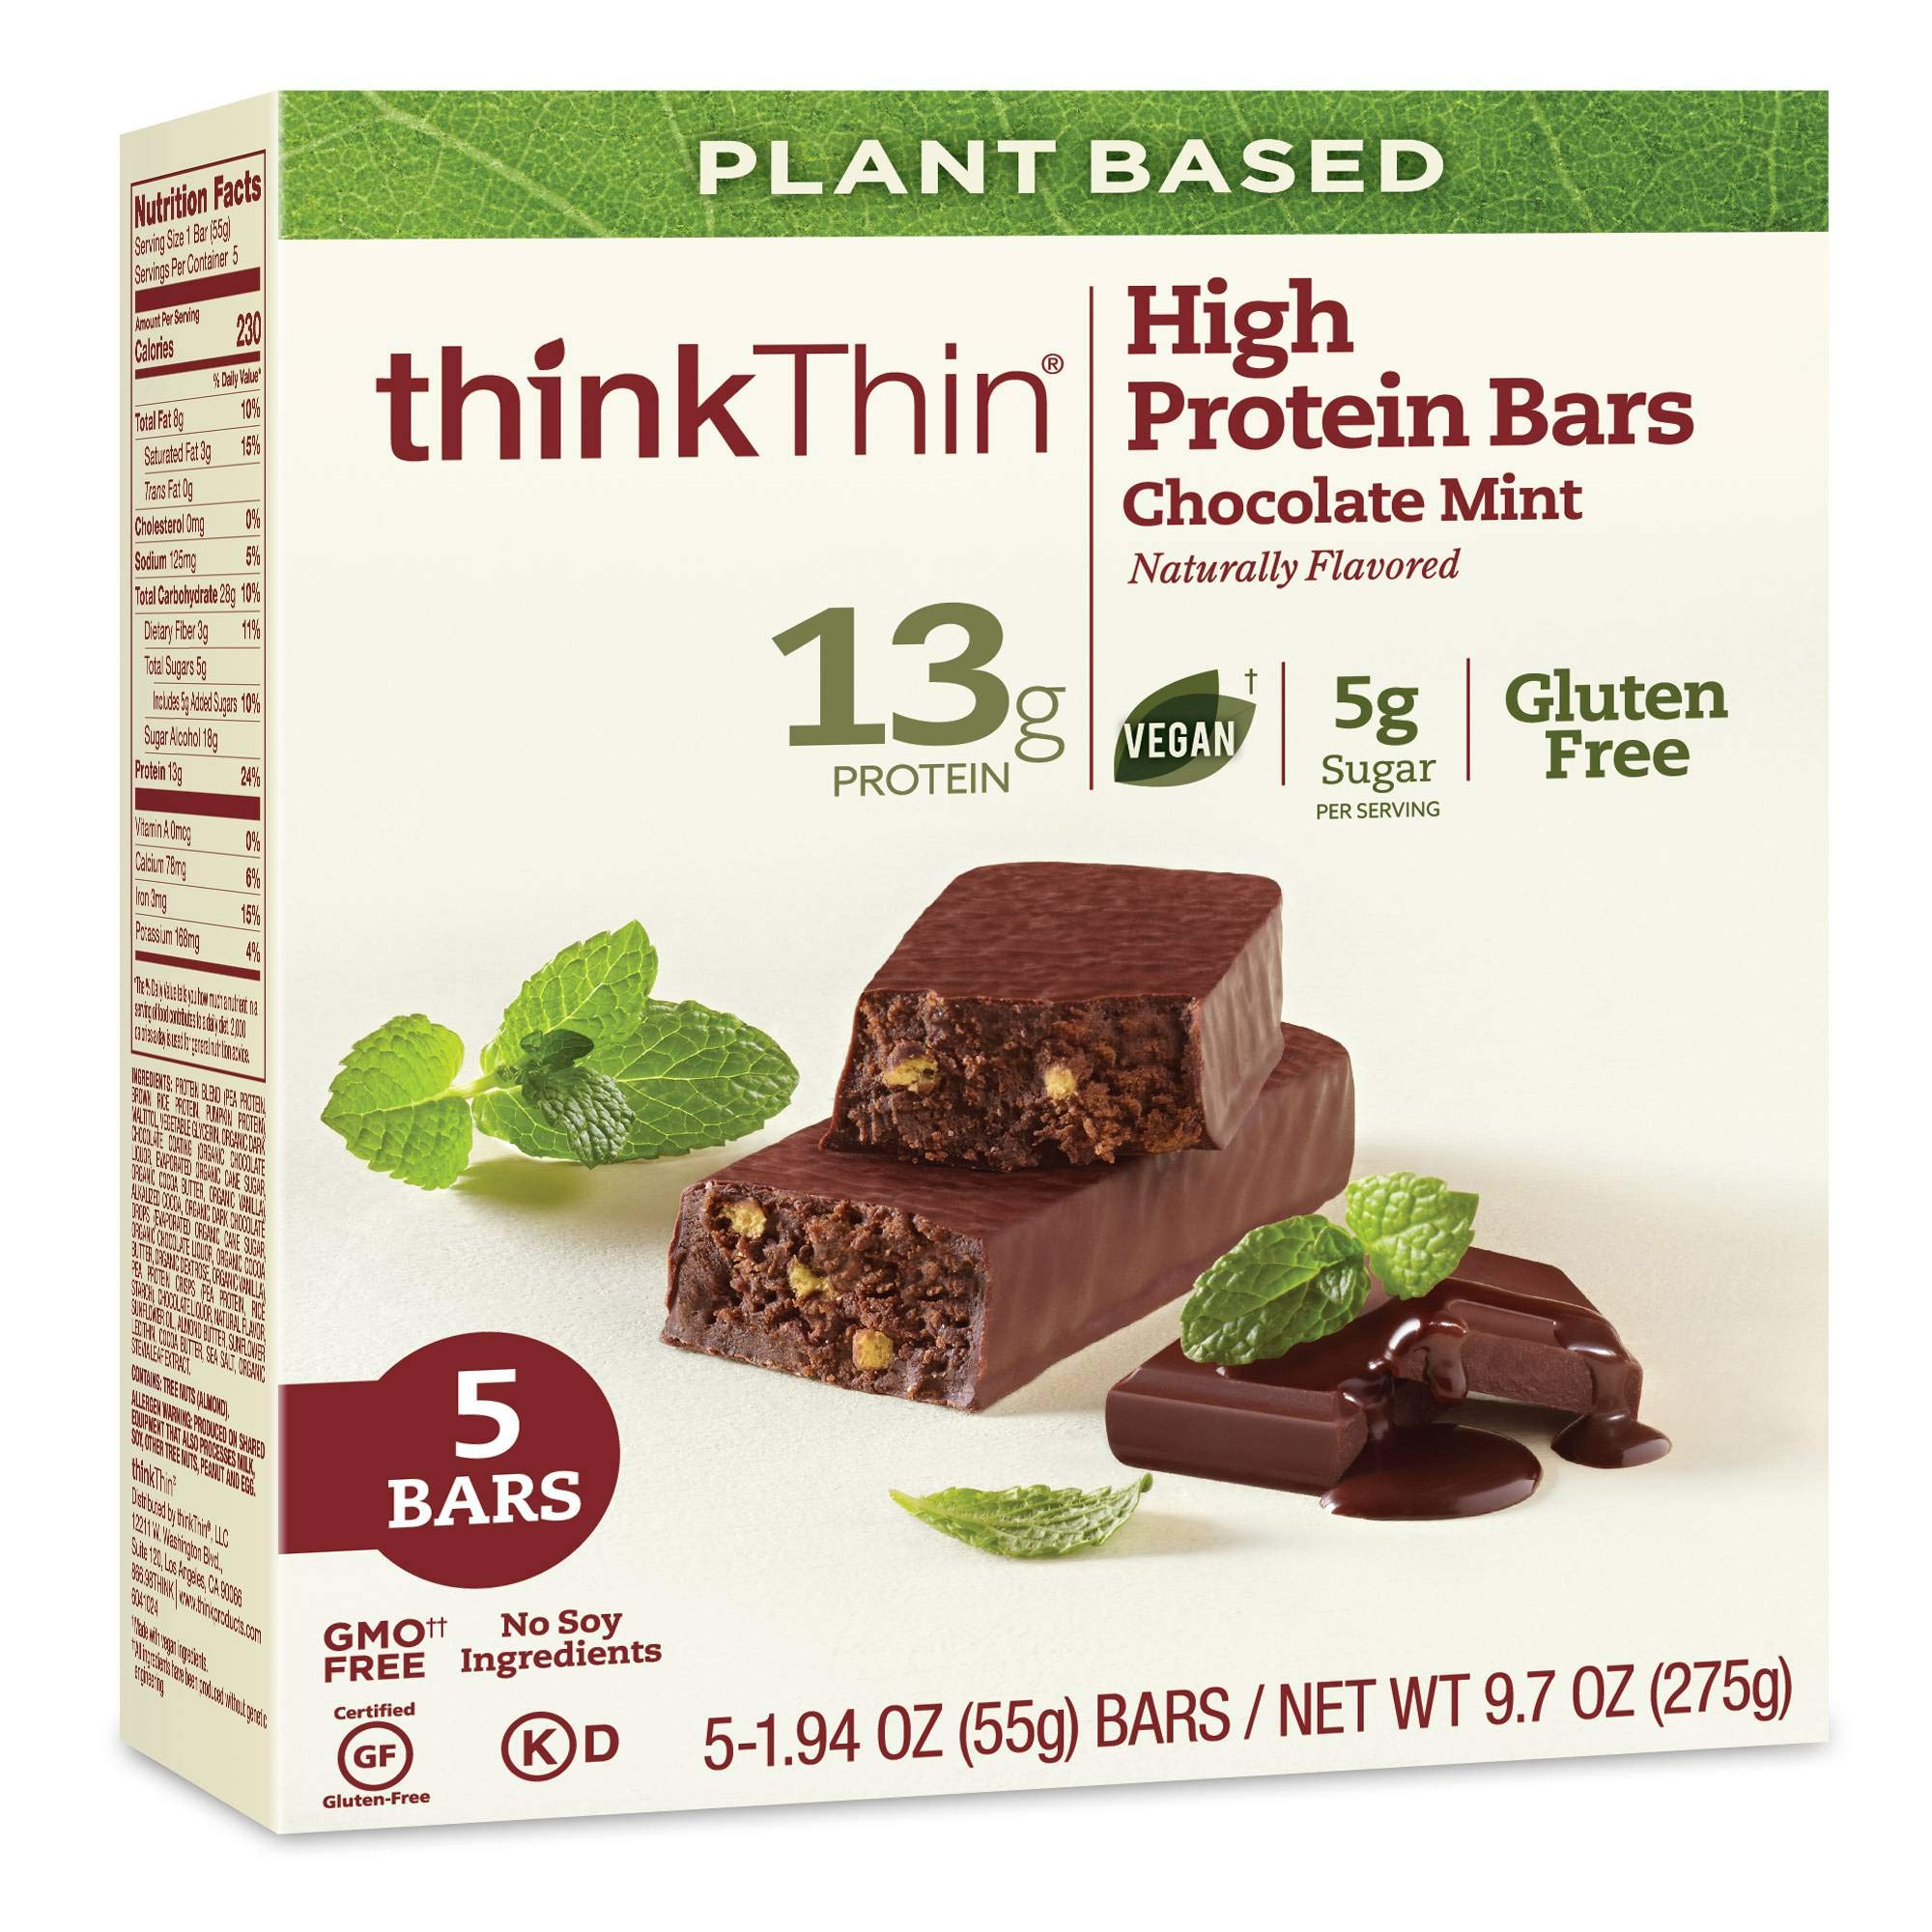 Think Thin Plant Based Chocolate Mint High Protein Bar, 5 count per pack - 24 per case.